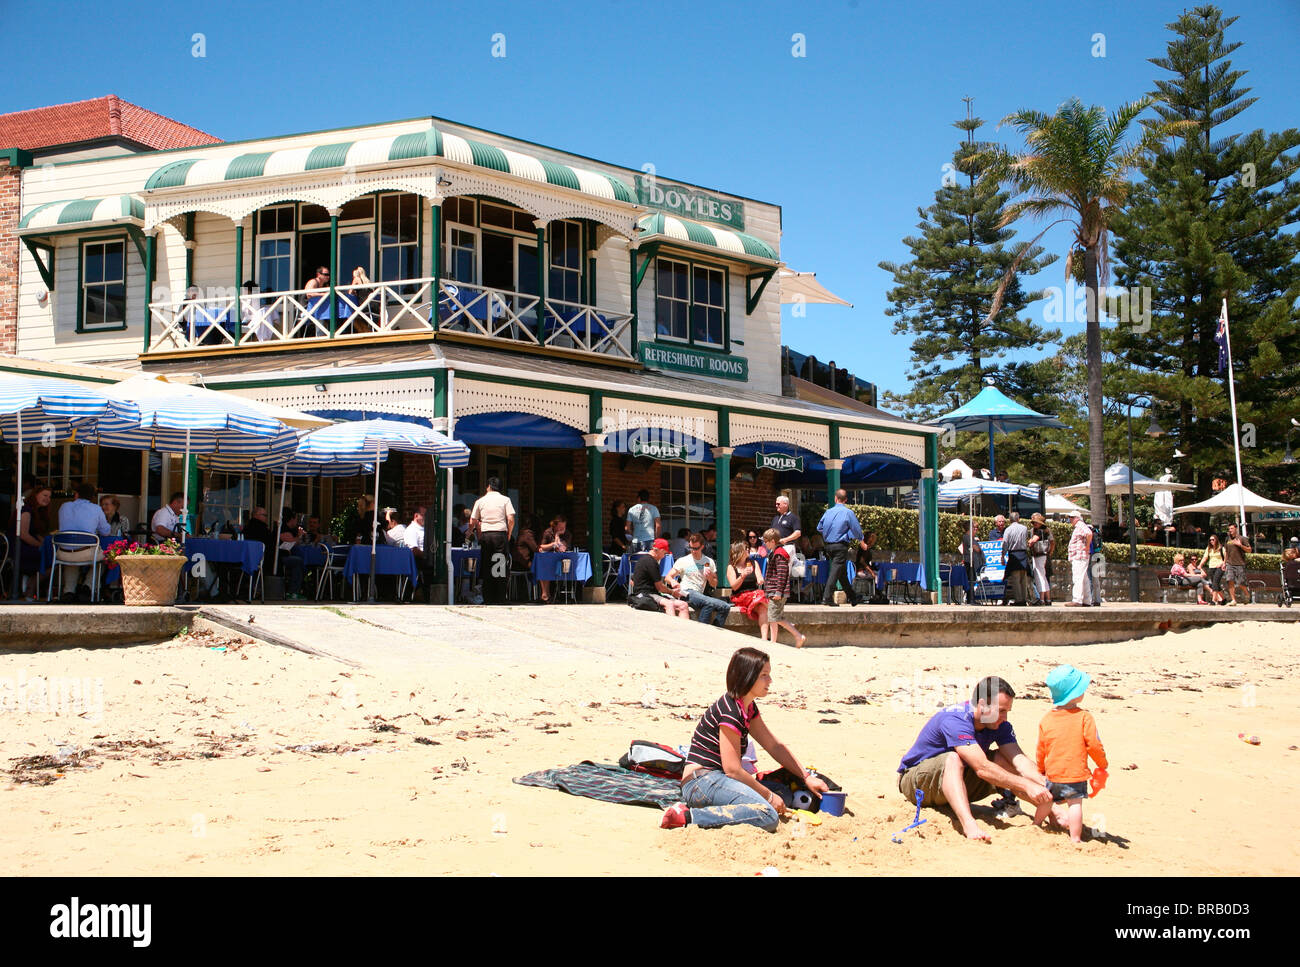 Doyles seafood Watsons Bay restaurant beach family traditional famous fish Sydney Australia sandy lunch - Stock Image